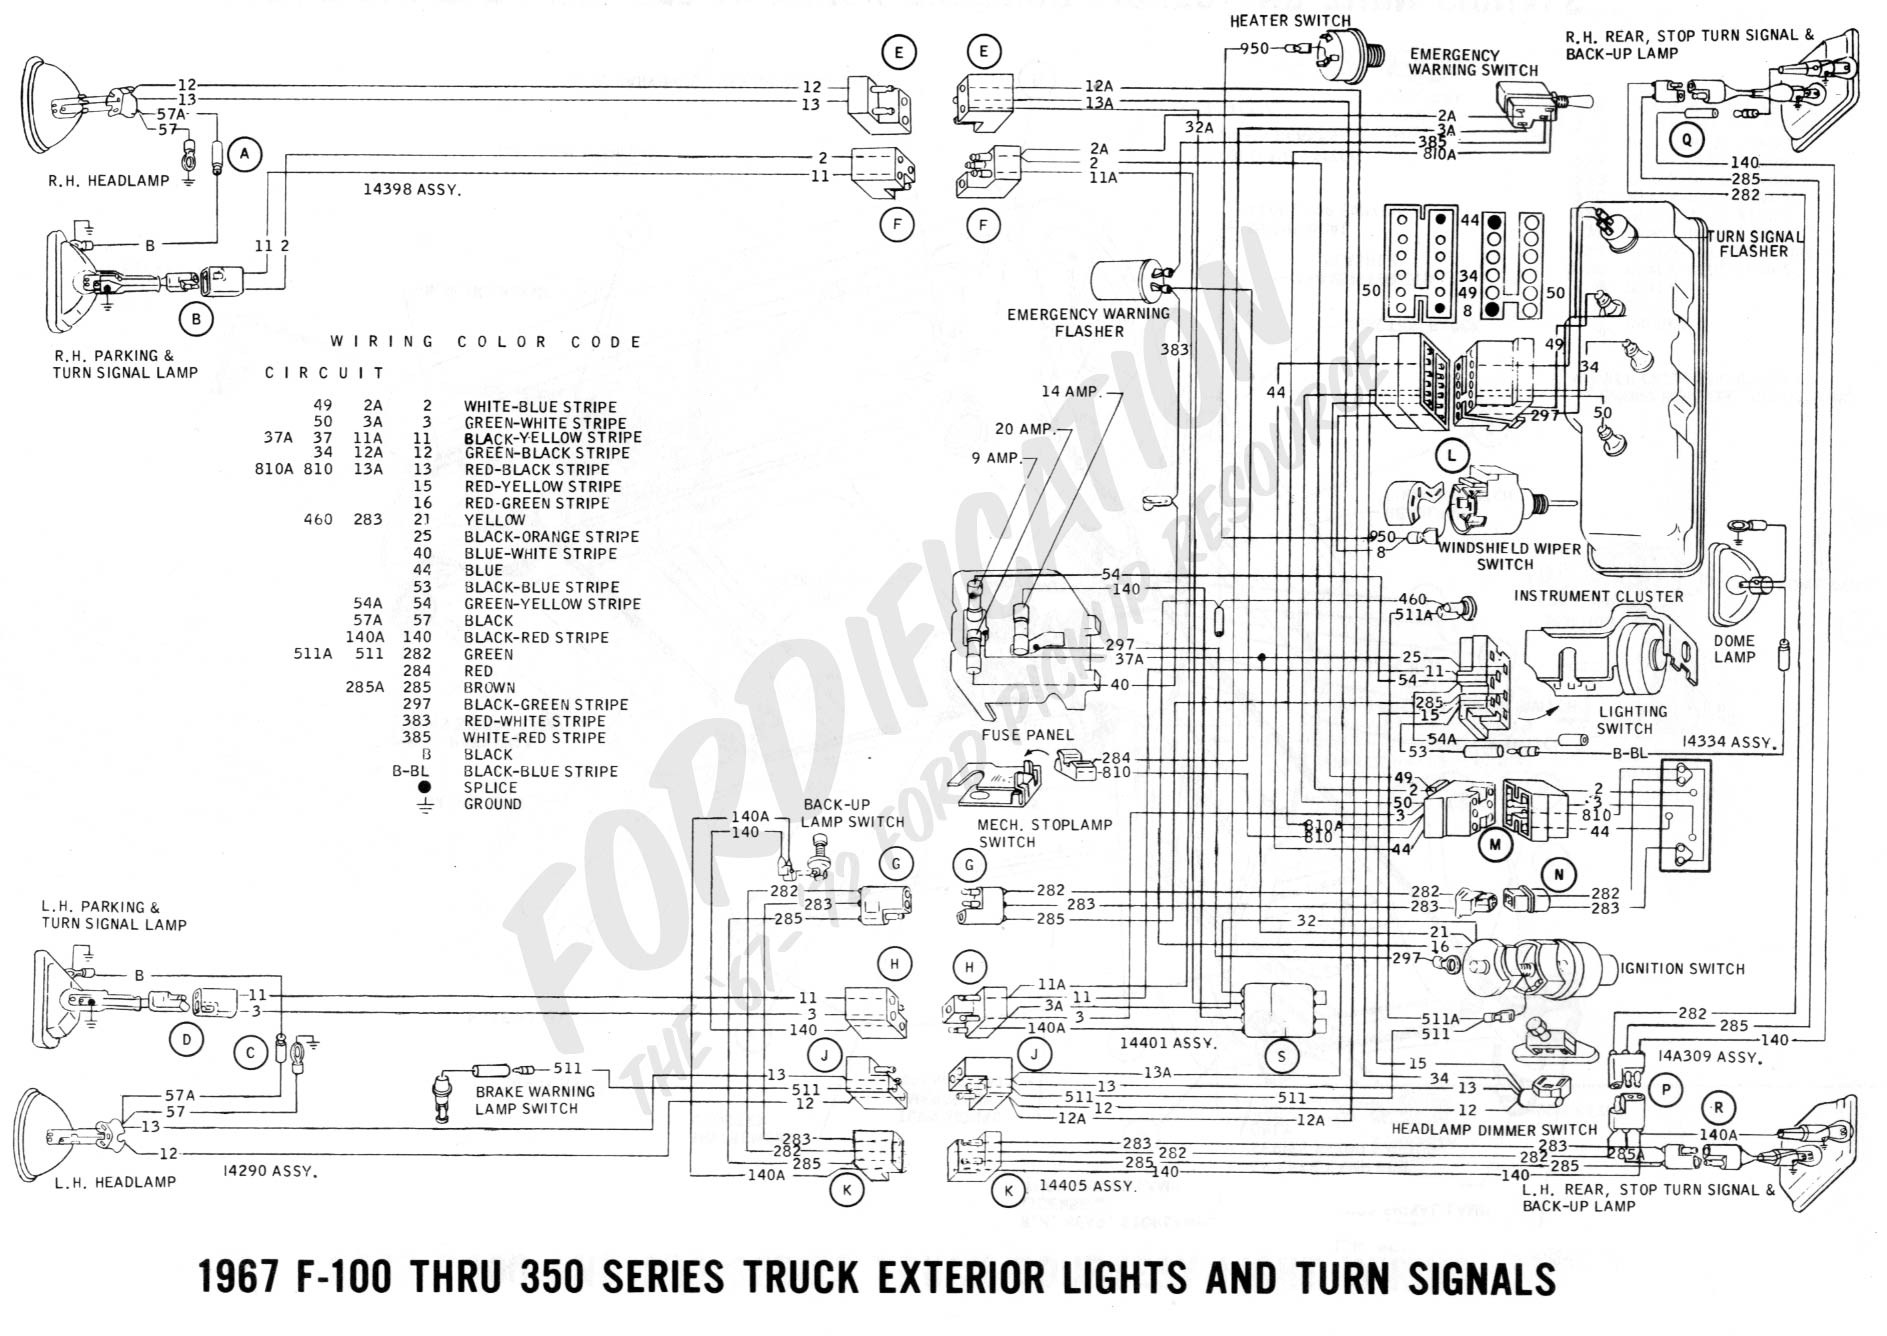 Ford F250 Trailer Wiring Diagram 1996 ford F 350 Wiring Wiring Info